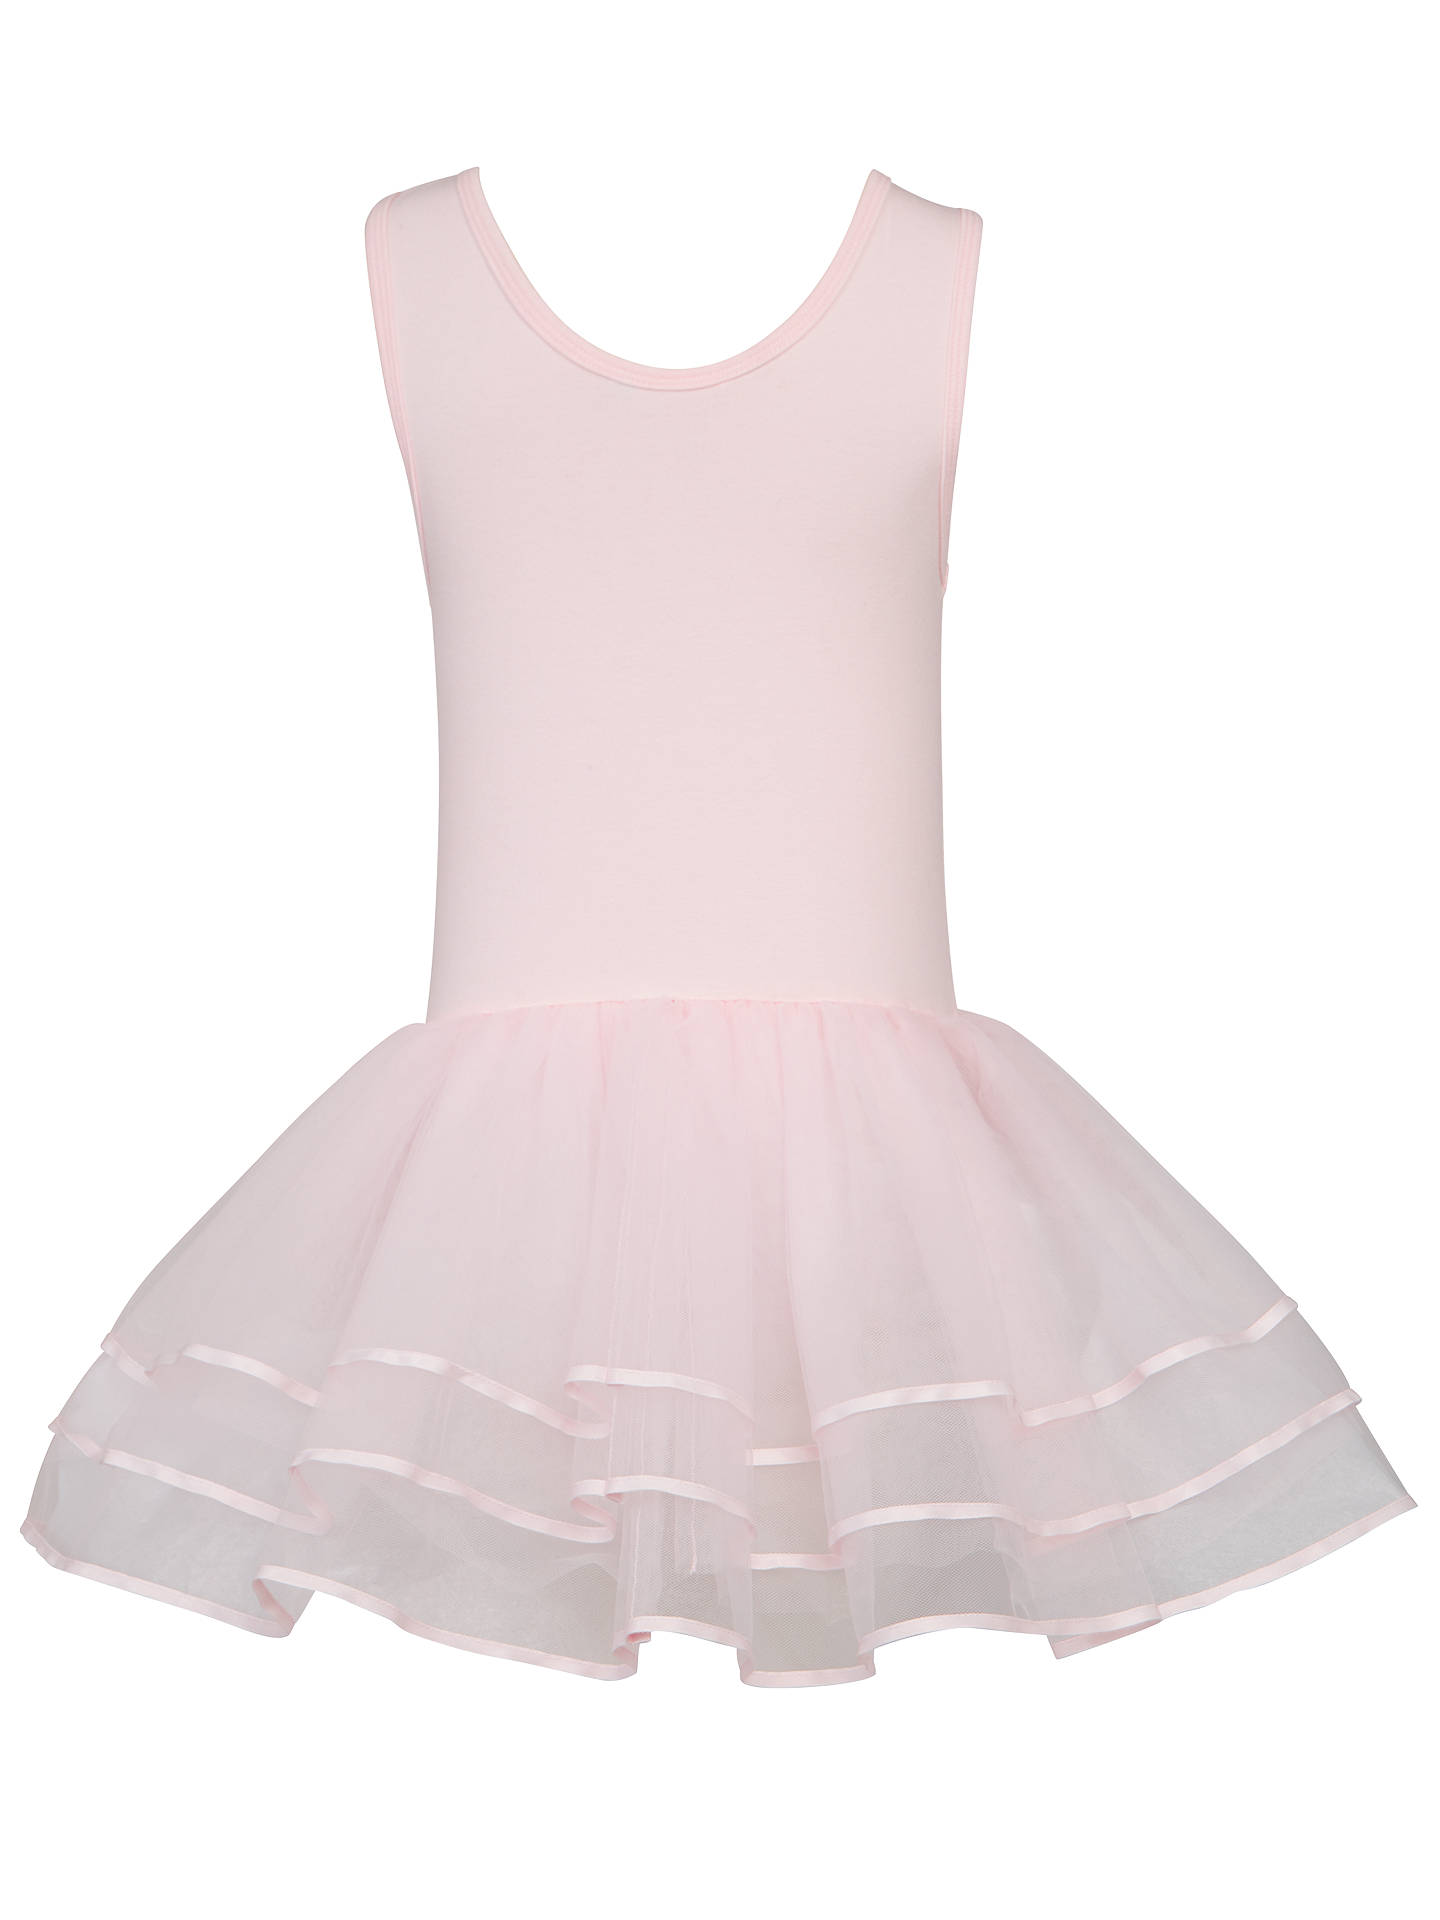 BuyJohn Lewis & Partners Girls' Ballet Tutu Dress, Pink, 2 years Online at johnlewis.com